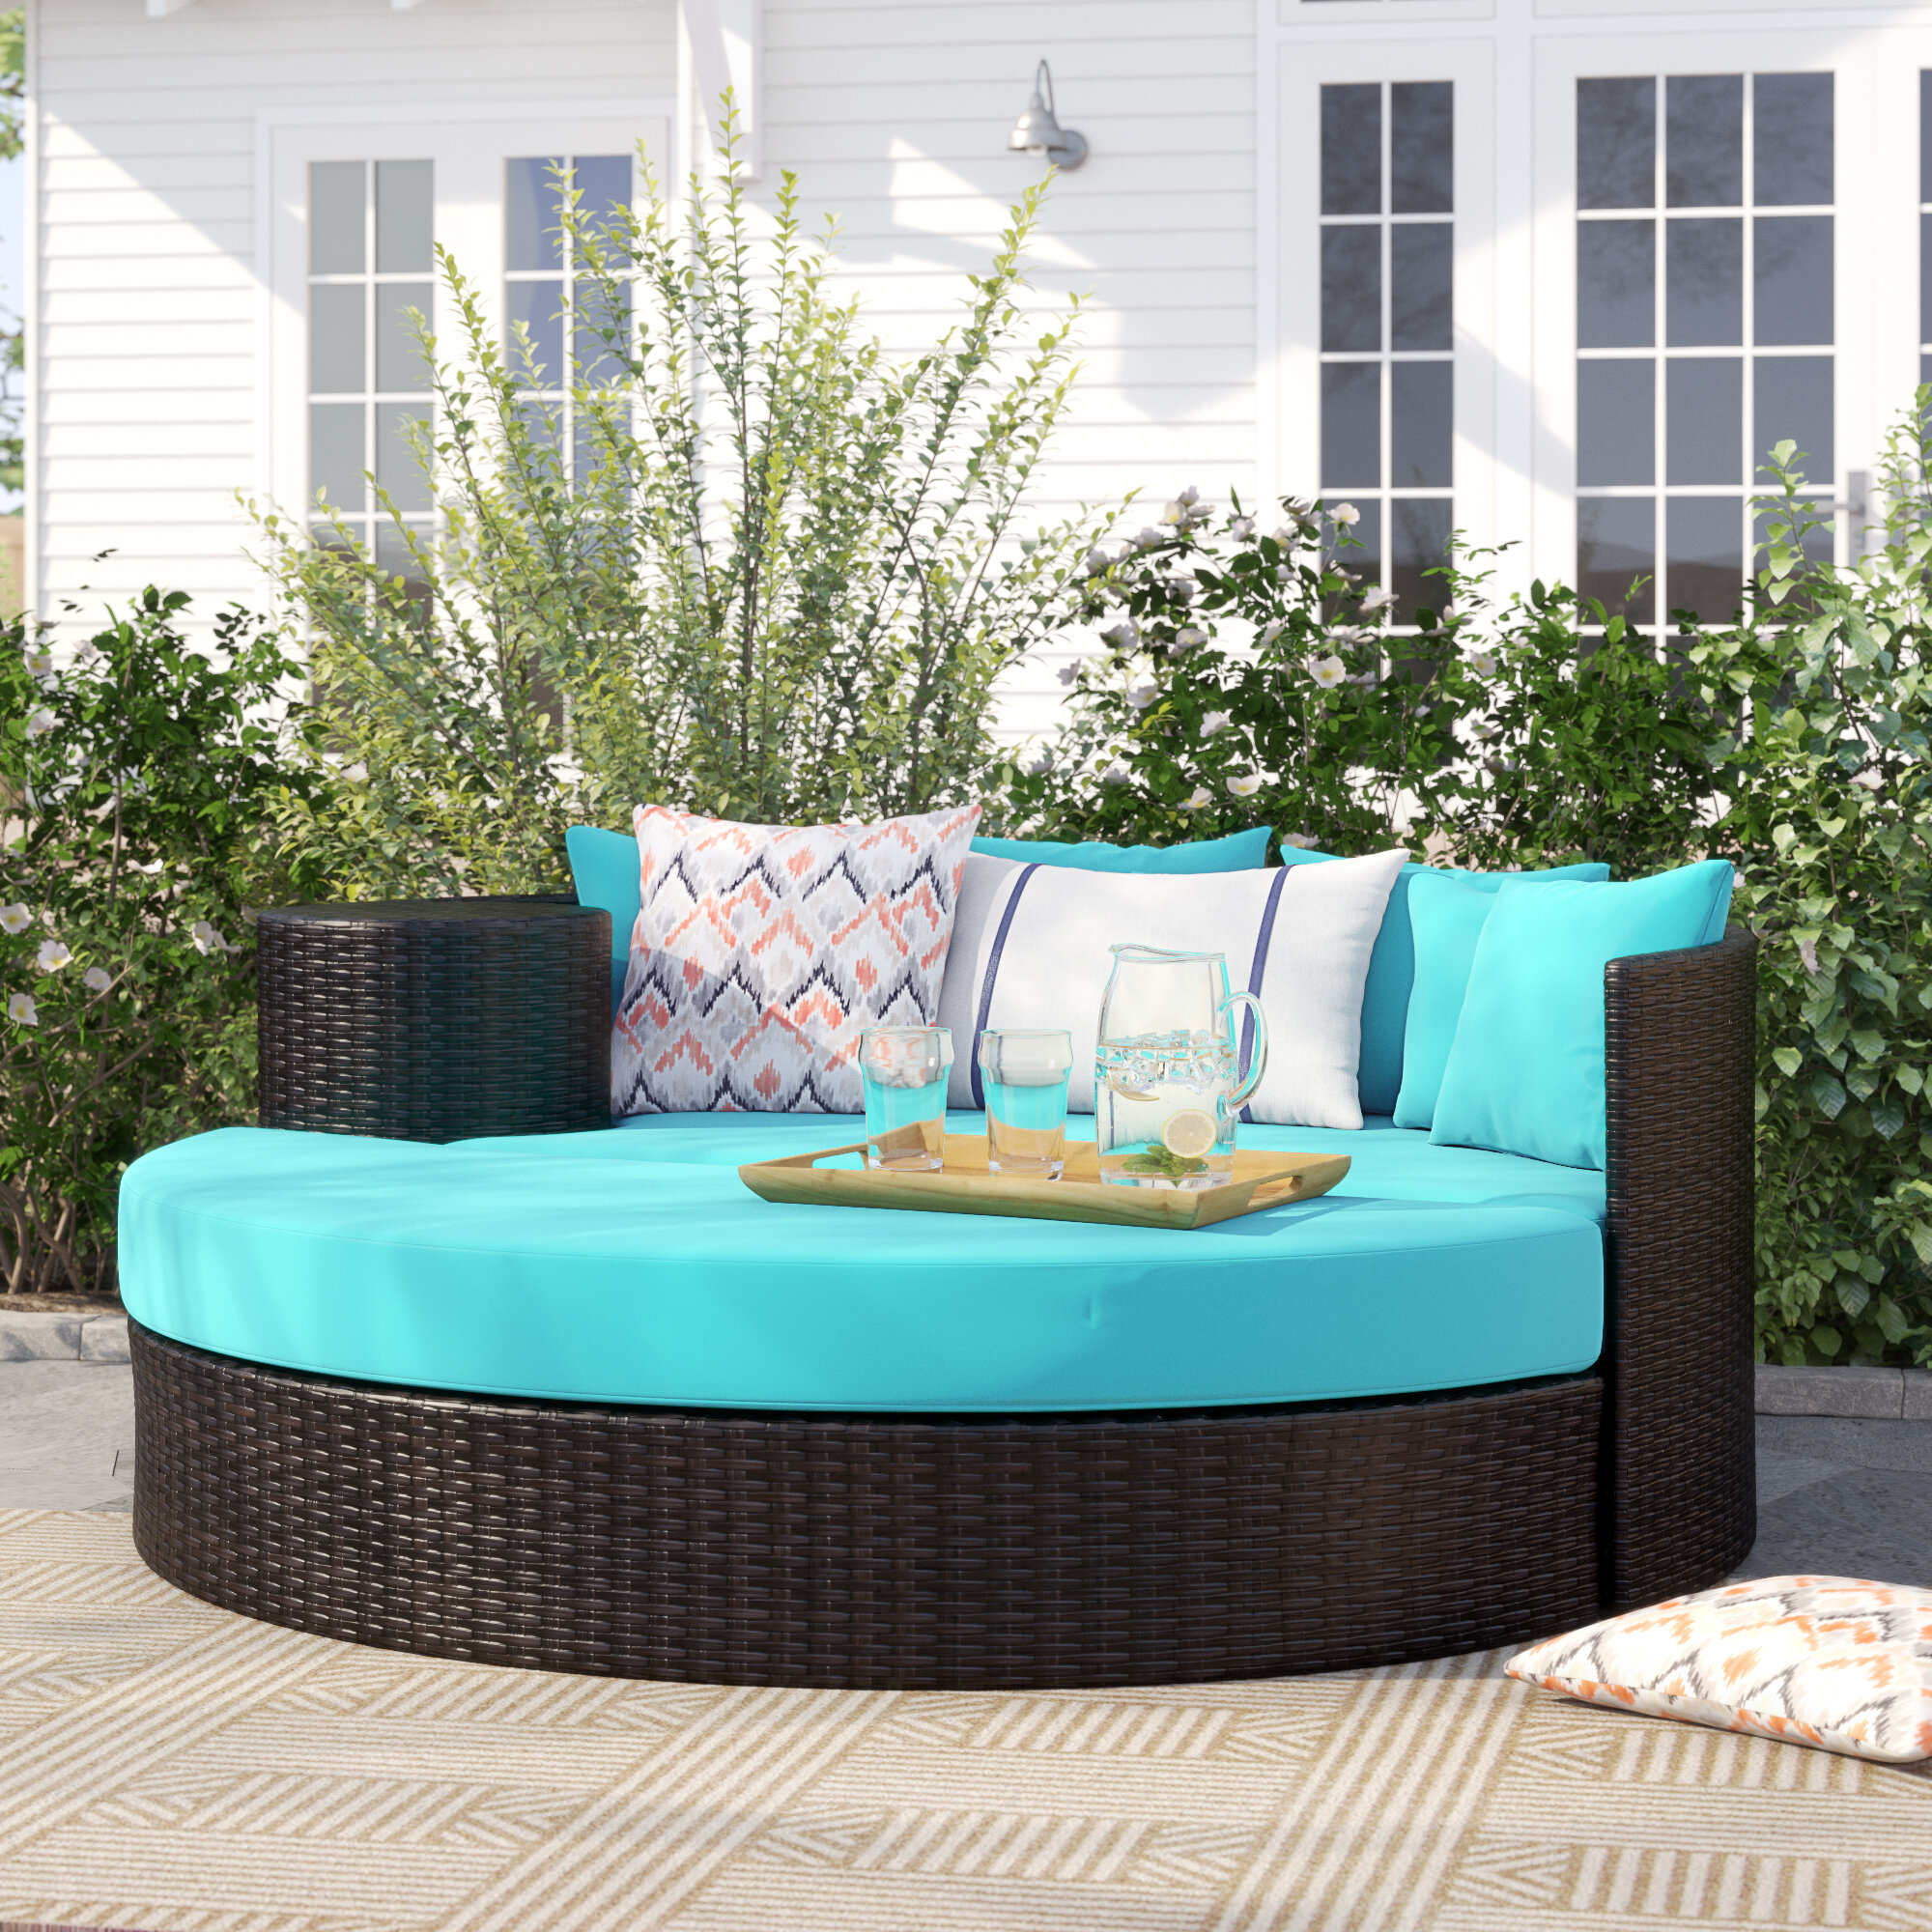 Freeport Patio Daybed with Cushions